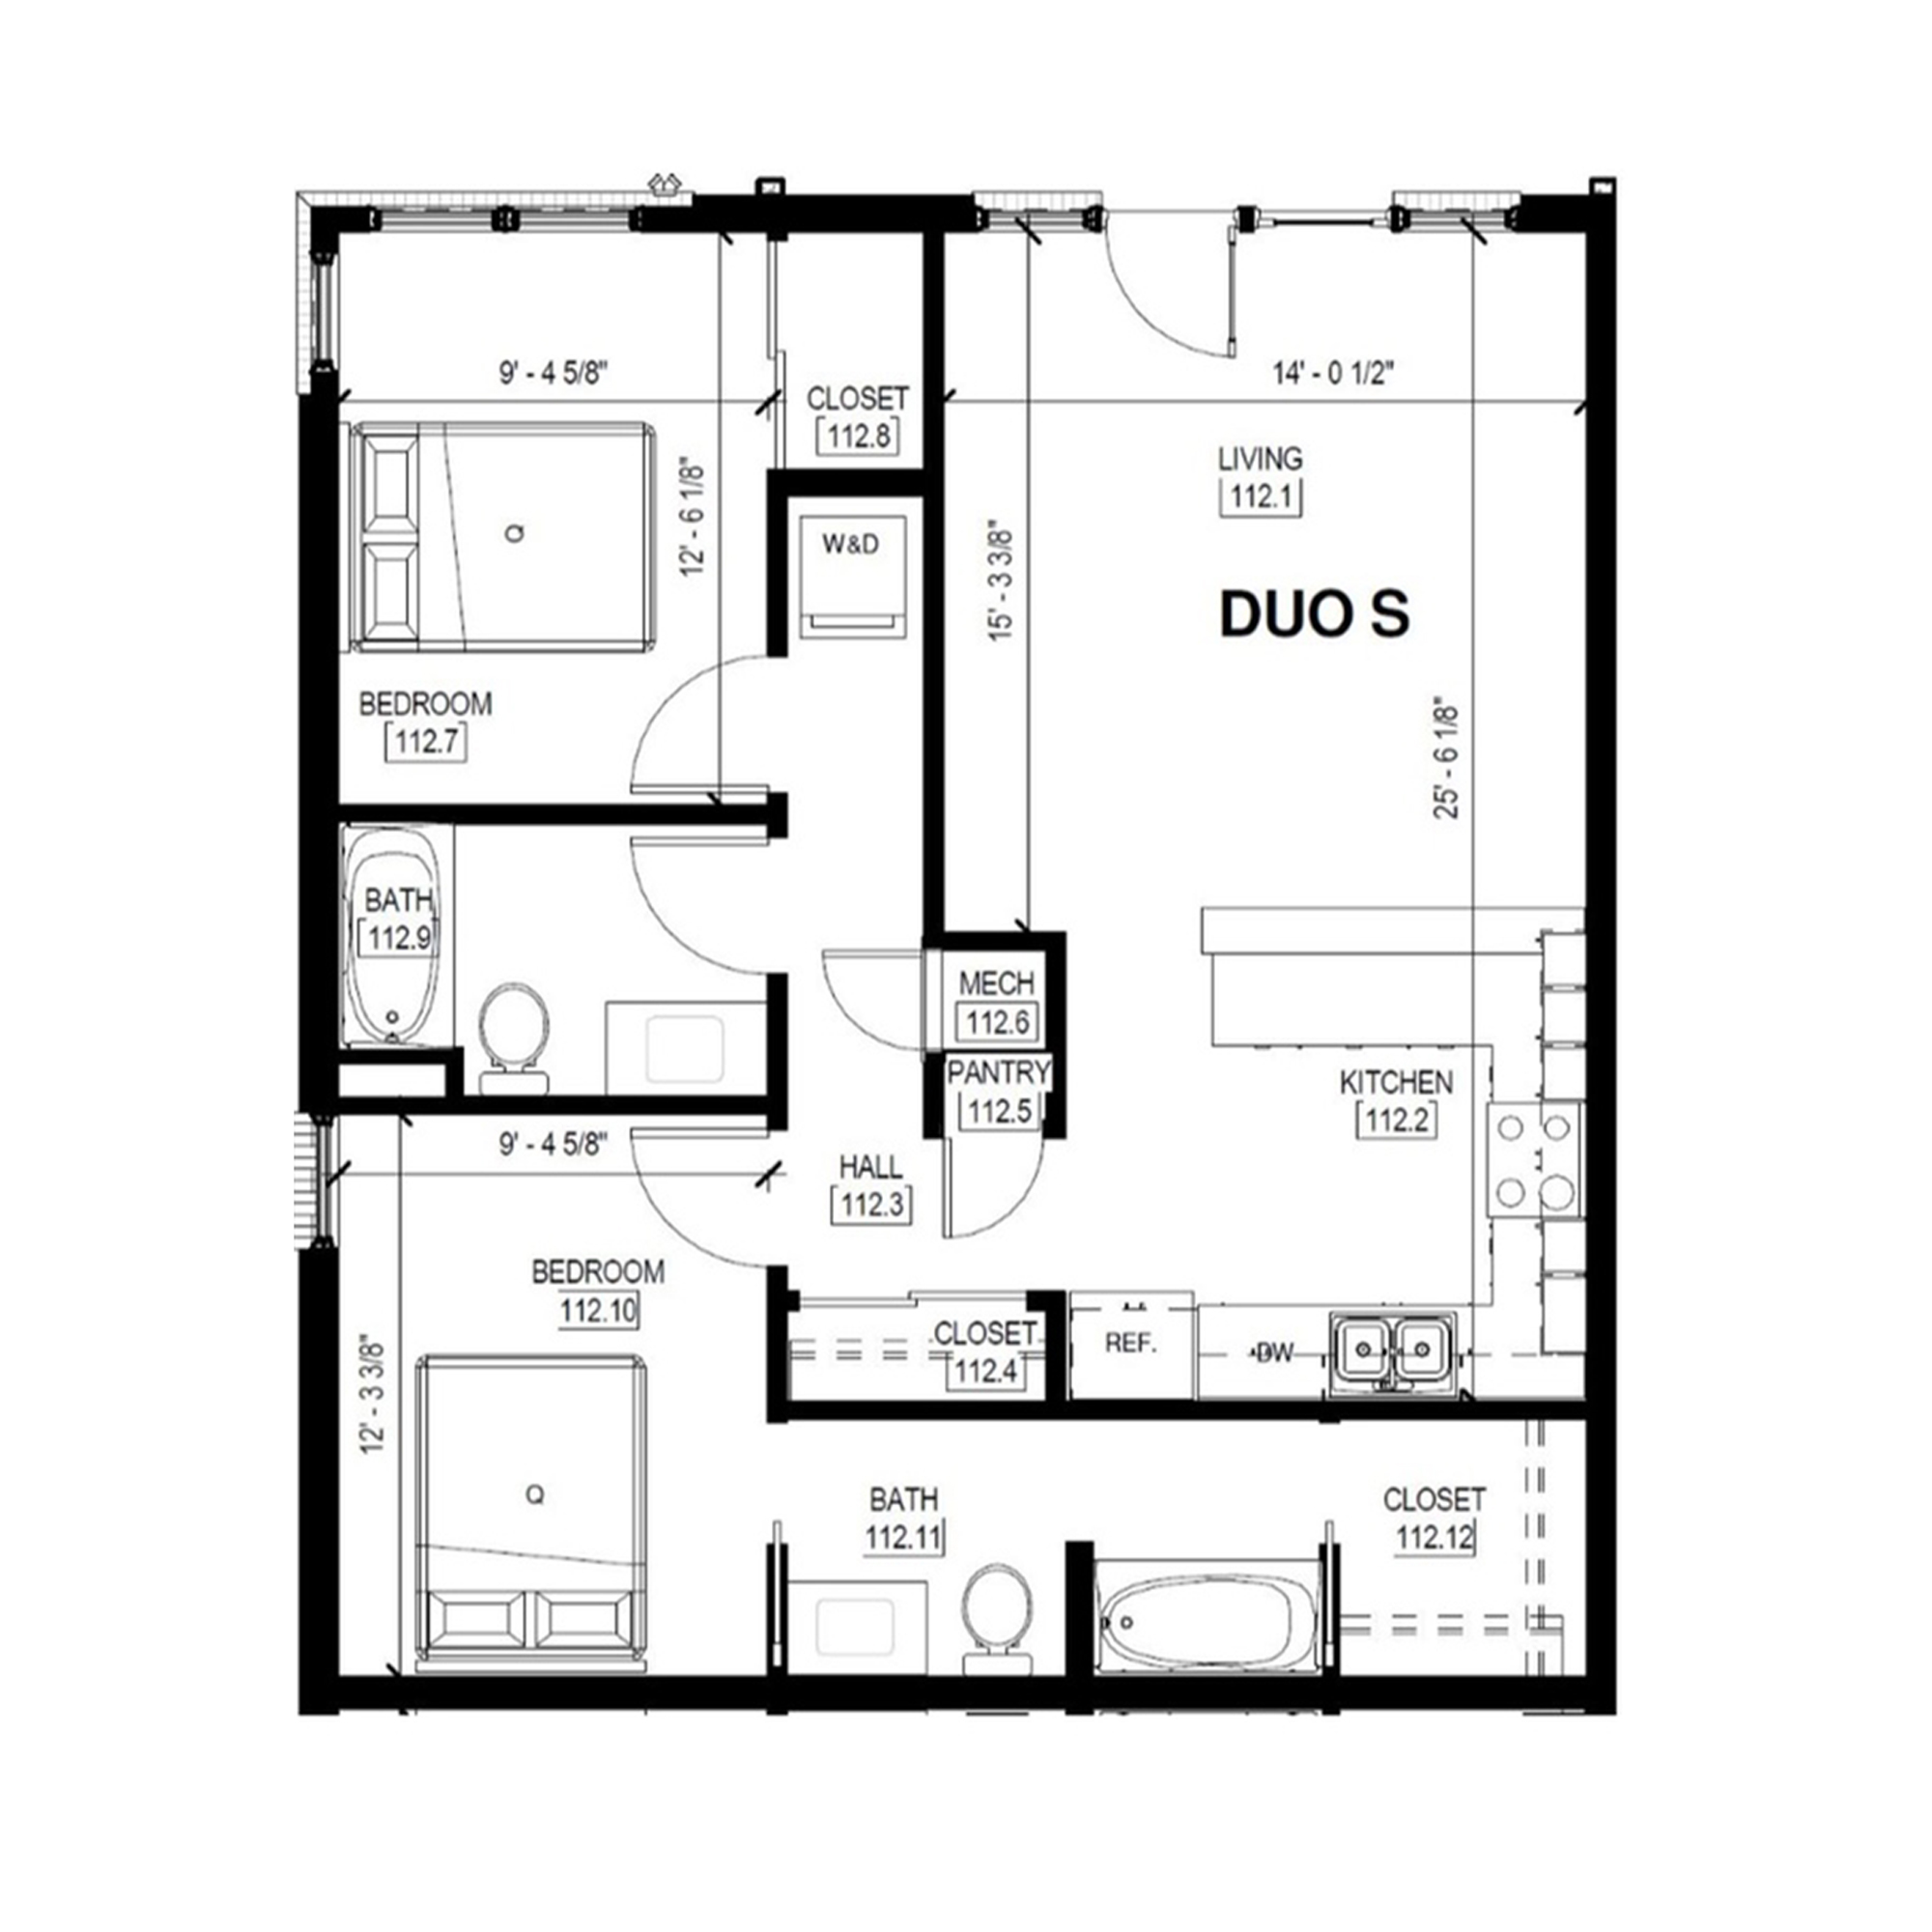 Duo S   2 Bed, 2 Bath